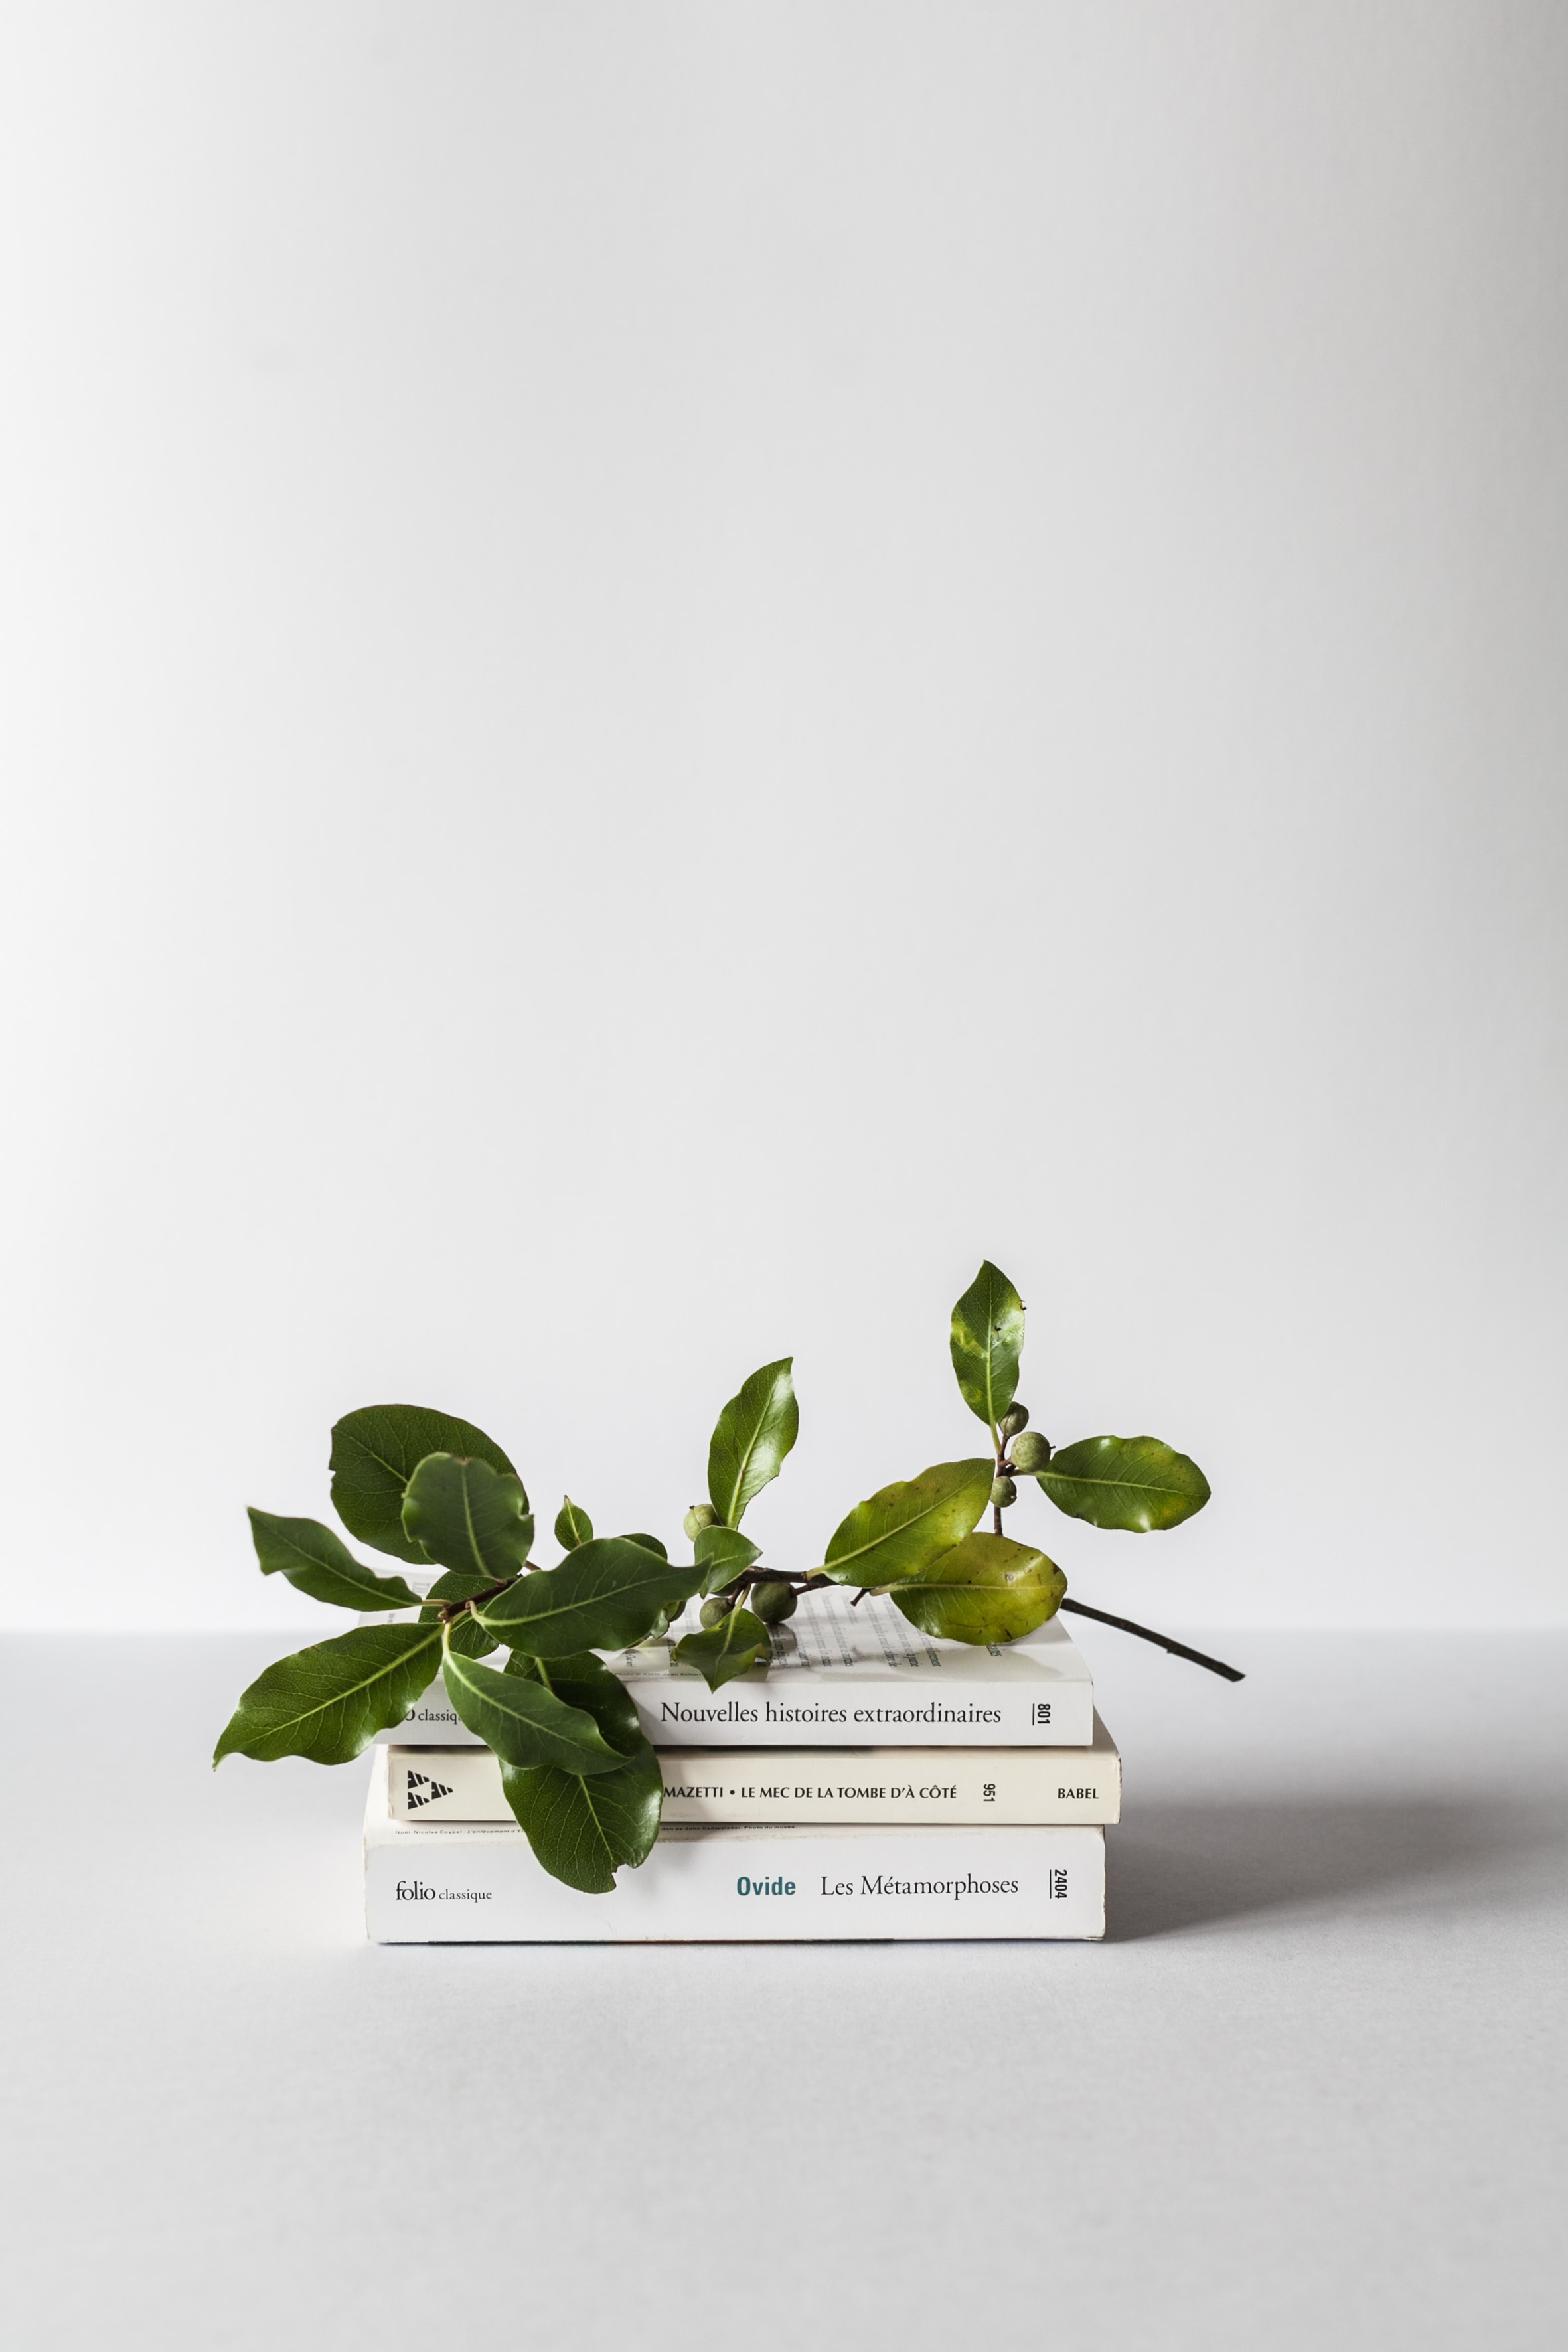 A stack of books and a tree branch